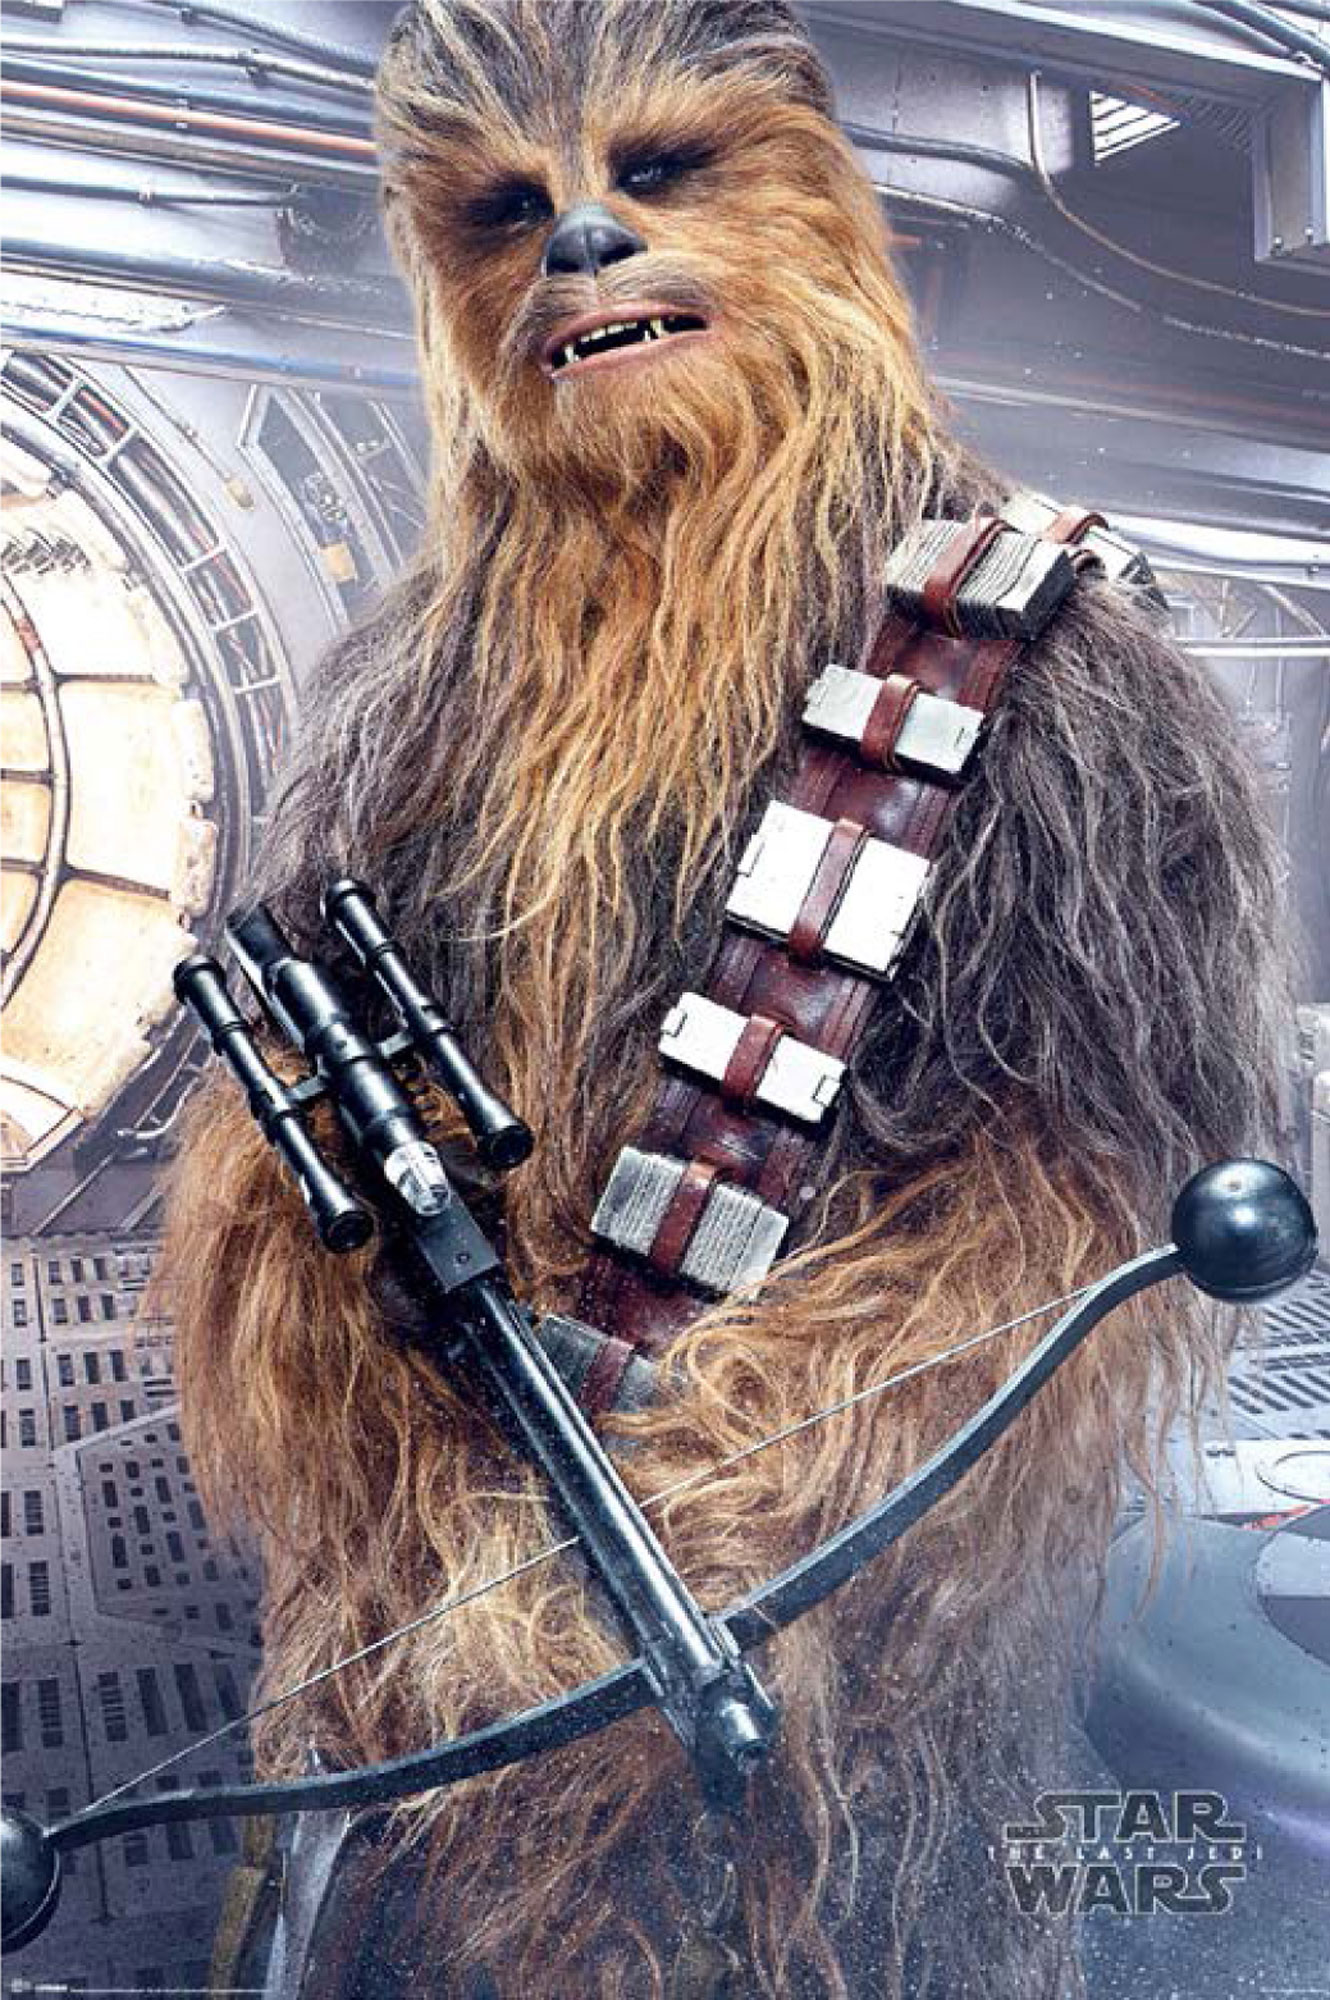 Star Wars - The Last Jedi  - Poster - Chewbacca Bowcaster